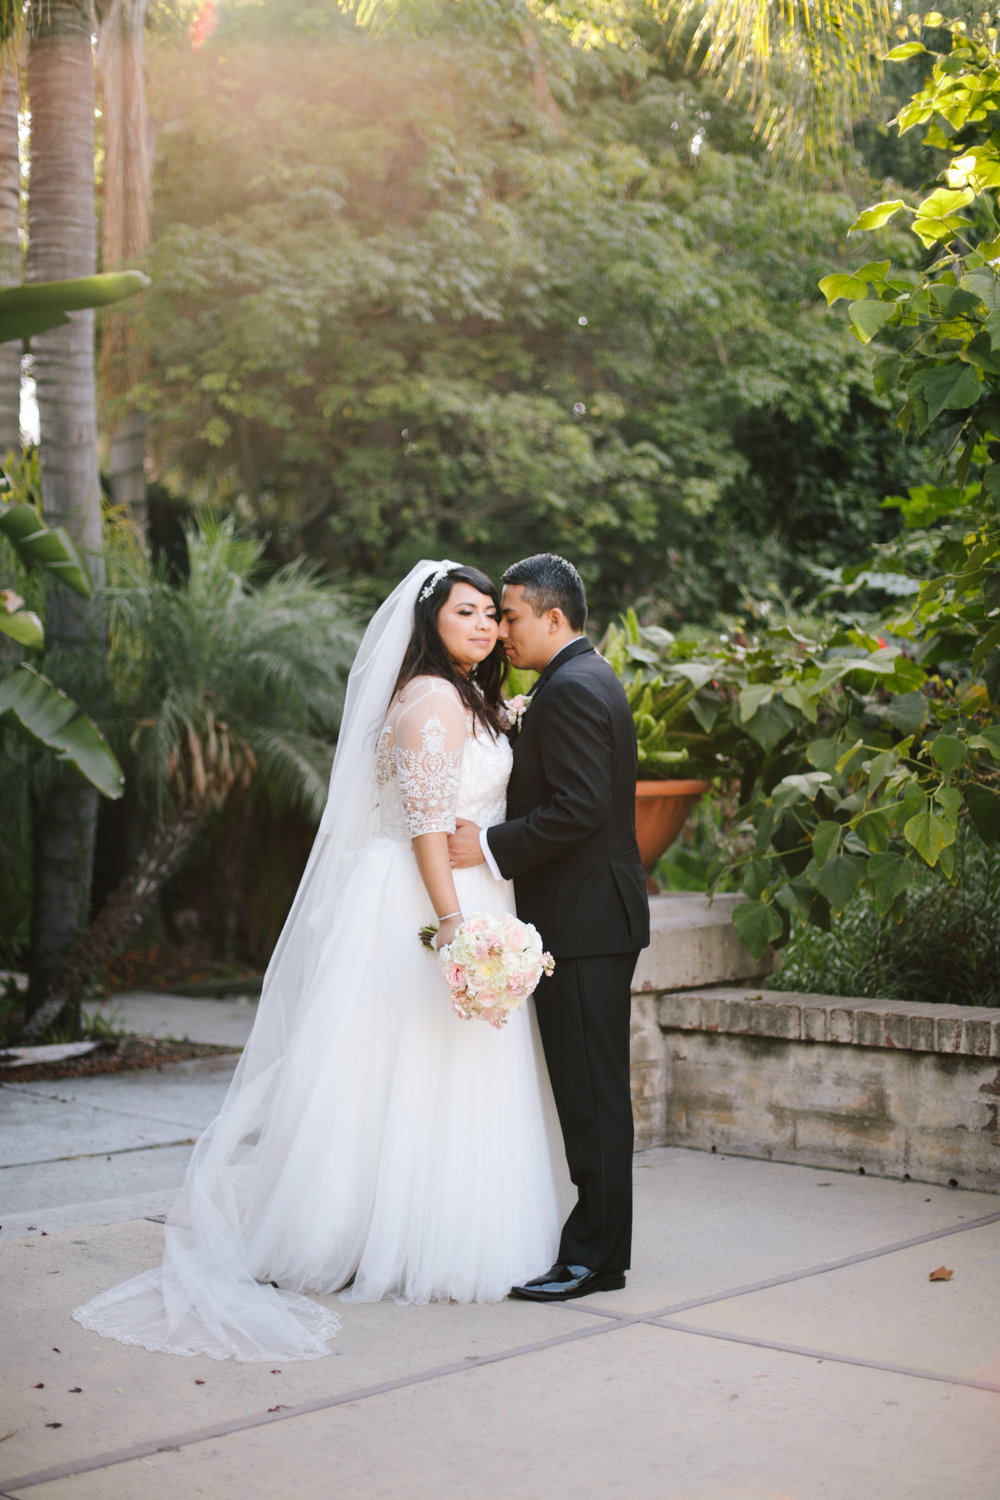 los angeles river center and gardens wedding photographer-1045.jpg